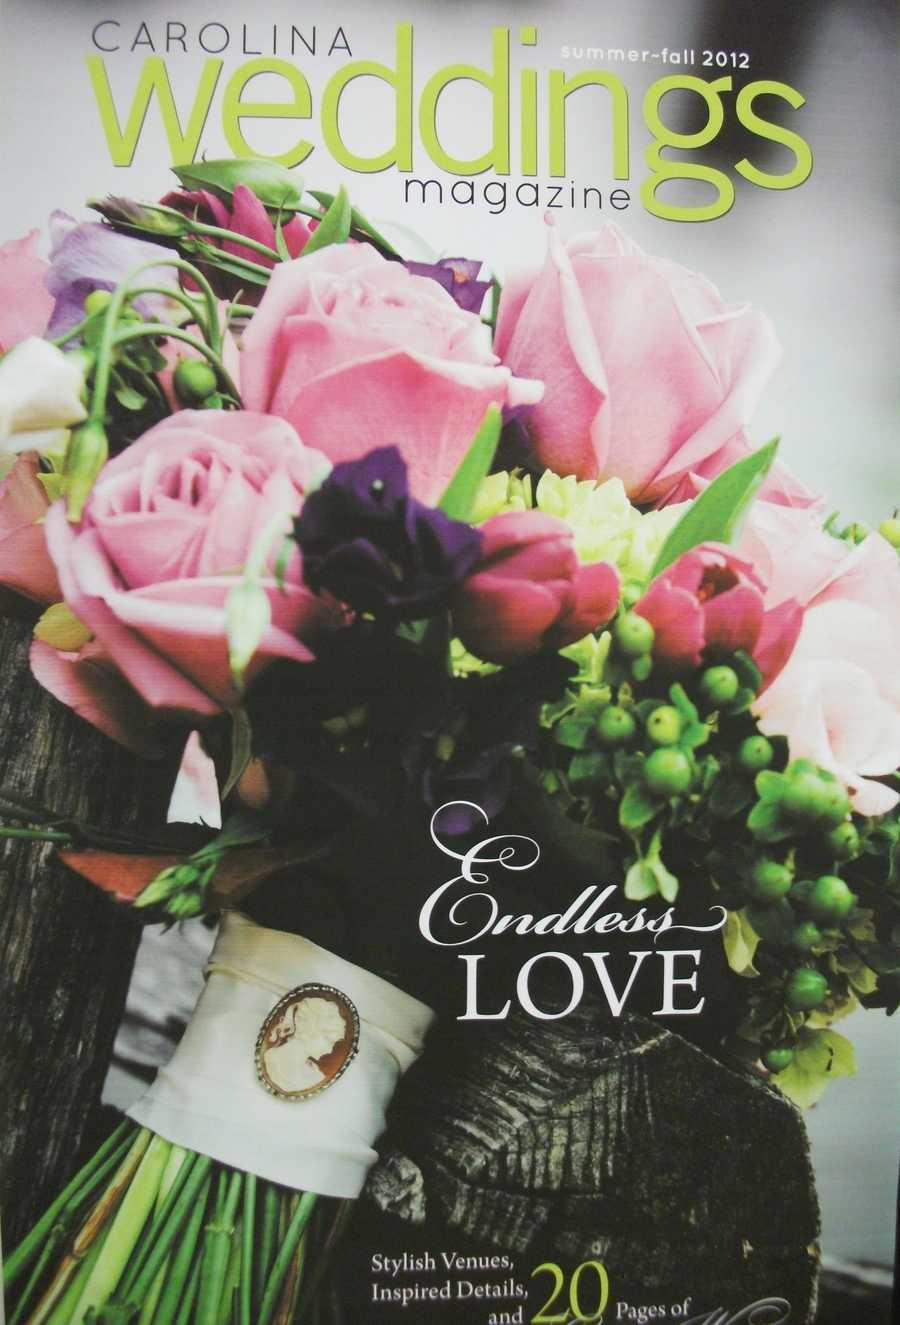 Carolina Weddings Magazine was available to give out magazines with wedding planning tips.